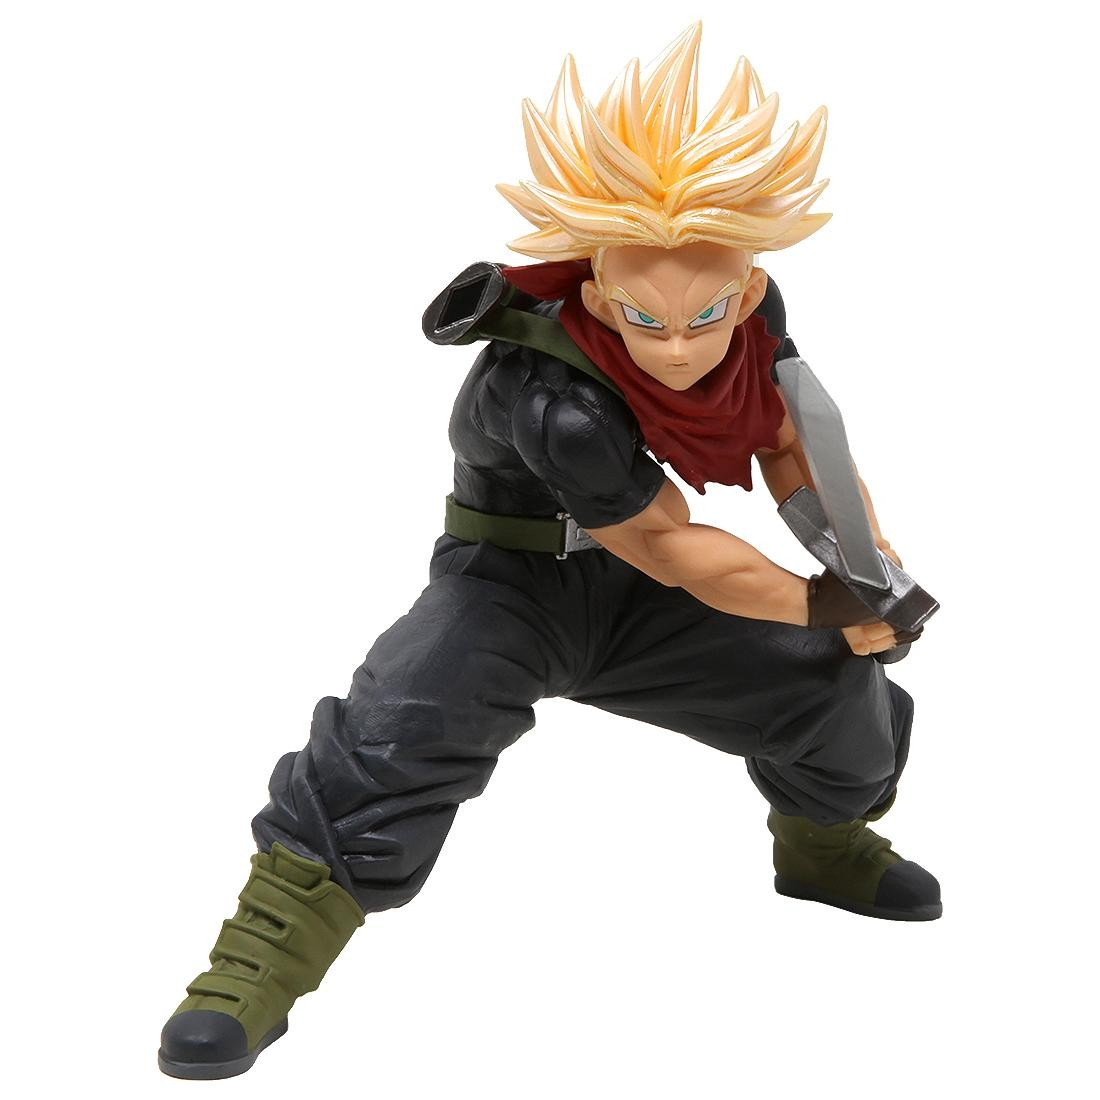 Banpresto Super Dragon Ball Heroes Transcendence Art Vol. 5 Super Saiyan Trunks Figure (black)